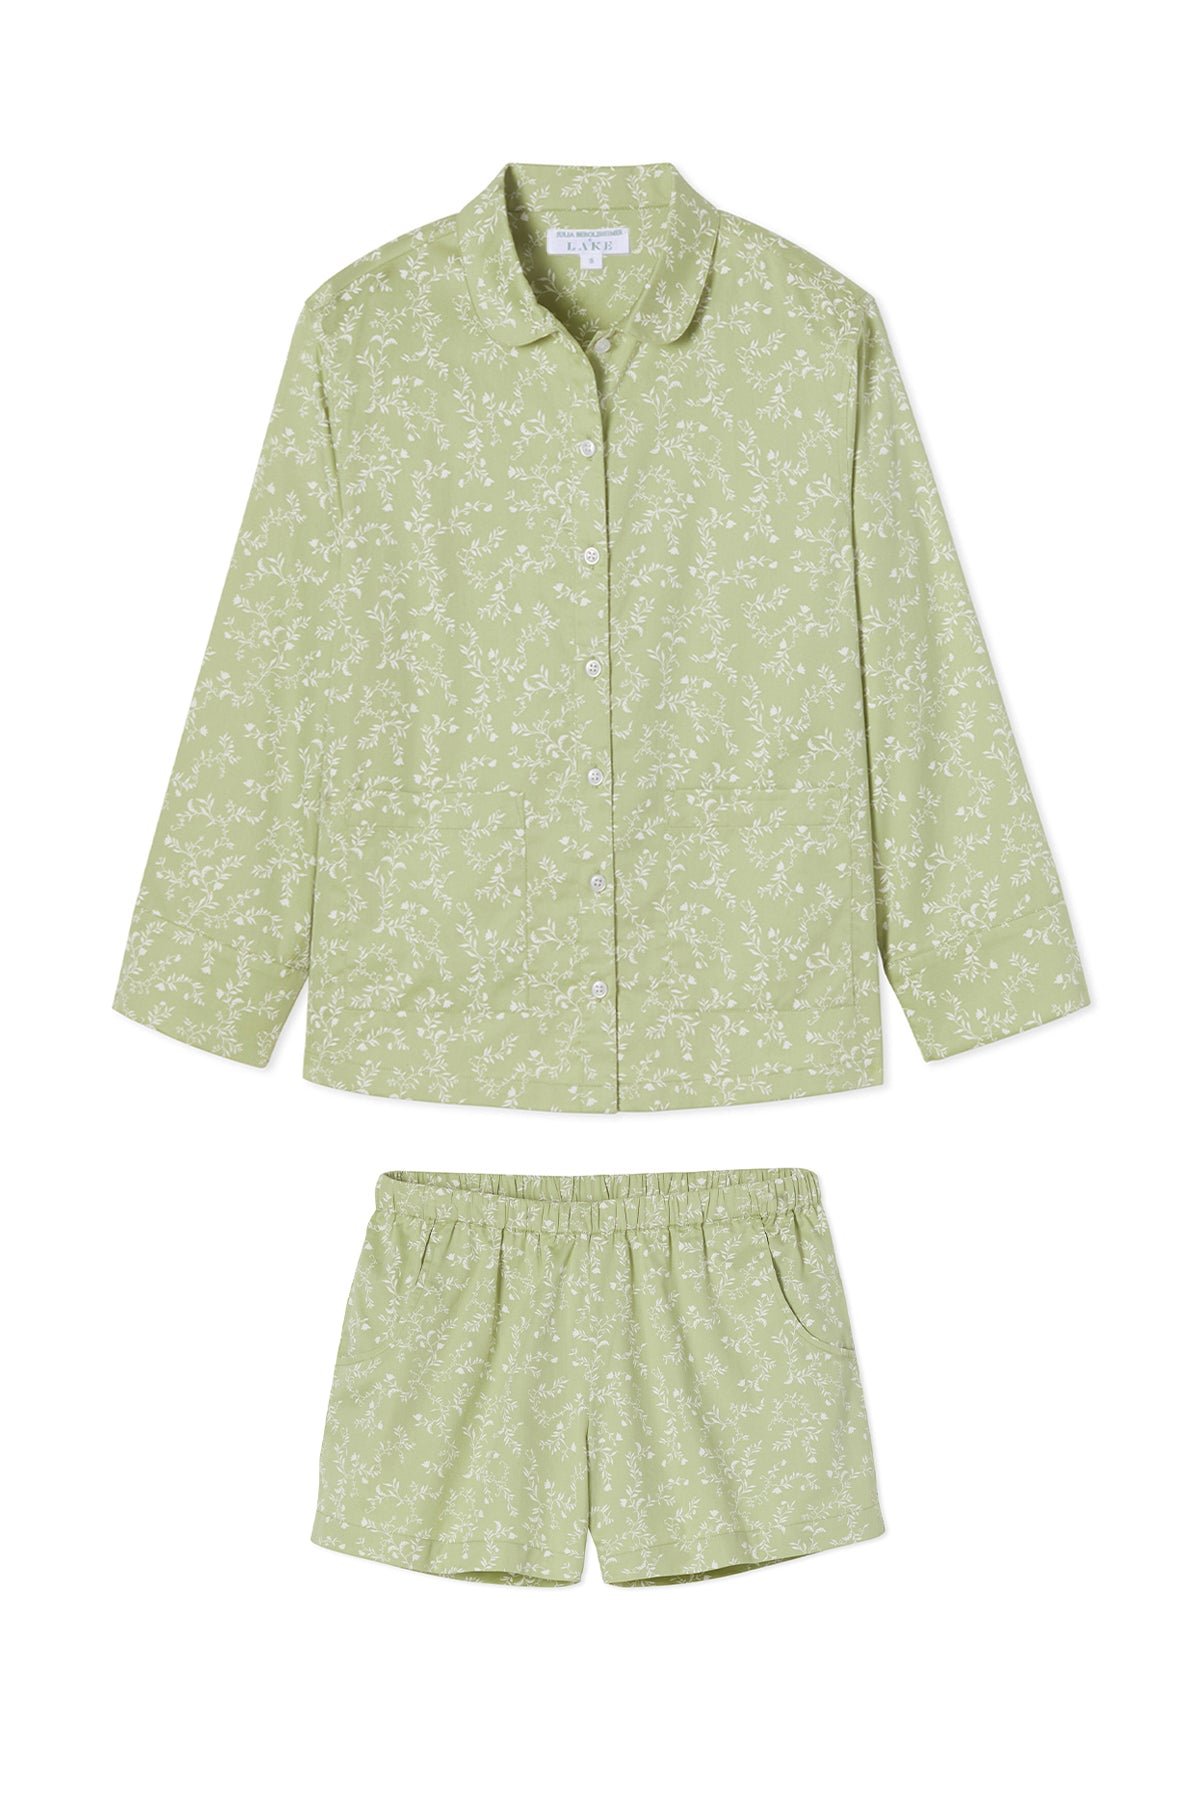 JB x LAKE Poplin Shorts Set in Green Vine